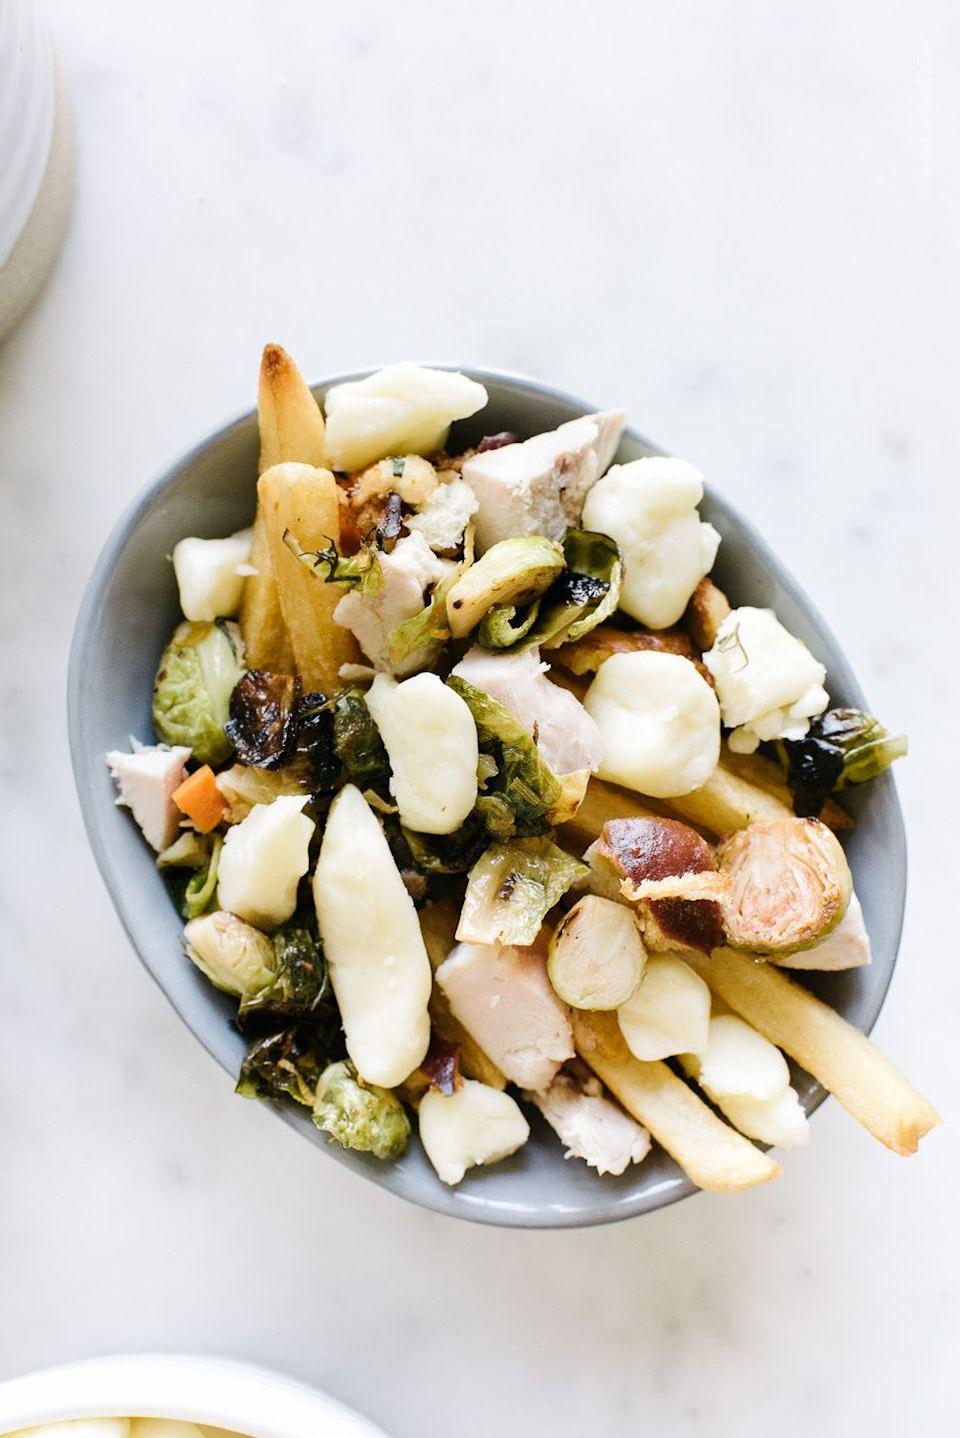 """<p>It's fine to have Canadian food the day after Thanksgiving, right? Just add your leftovers to a plate of fries!</p><p><em><a href=""""http://iamafoodblog.com/thanksgiving-poutine/"""" rel=""""nofollow noopener"""" target=""""_blank"""" data-ylk=""""slk:Get the recipe from I Am A Food Blog »"""" class=""""link rapid-noclick-resp"""">Get the recipe from I Am A Food Blog »</a></em></p>"""